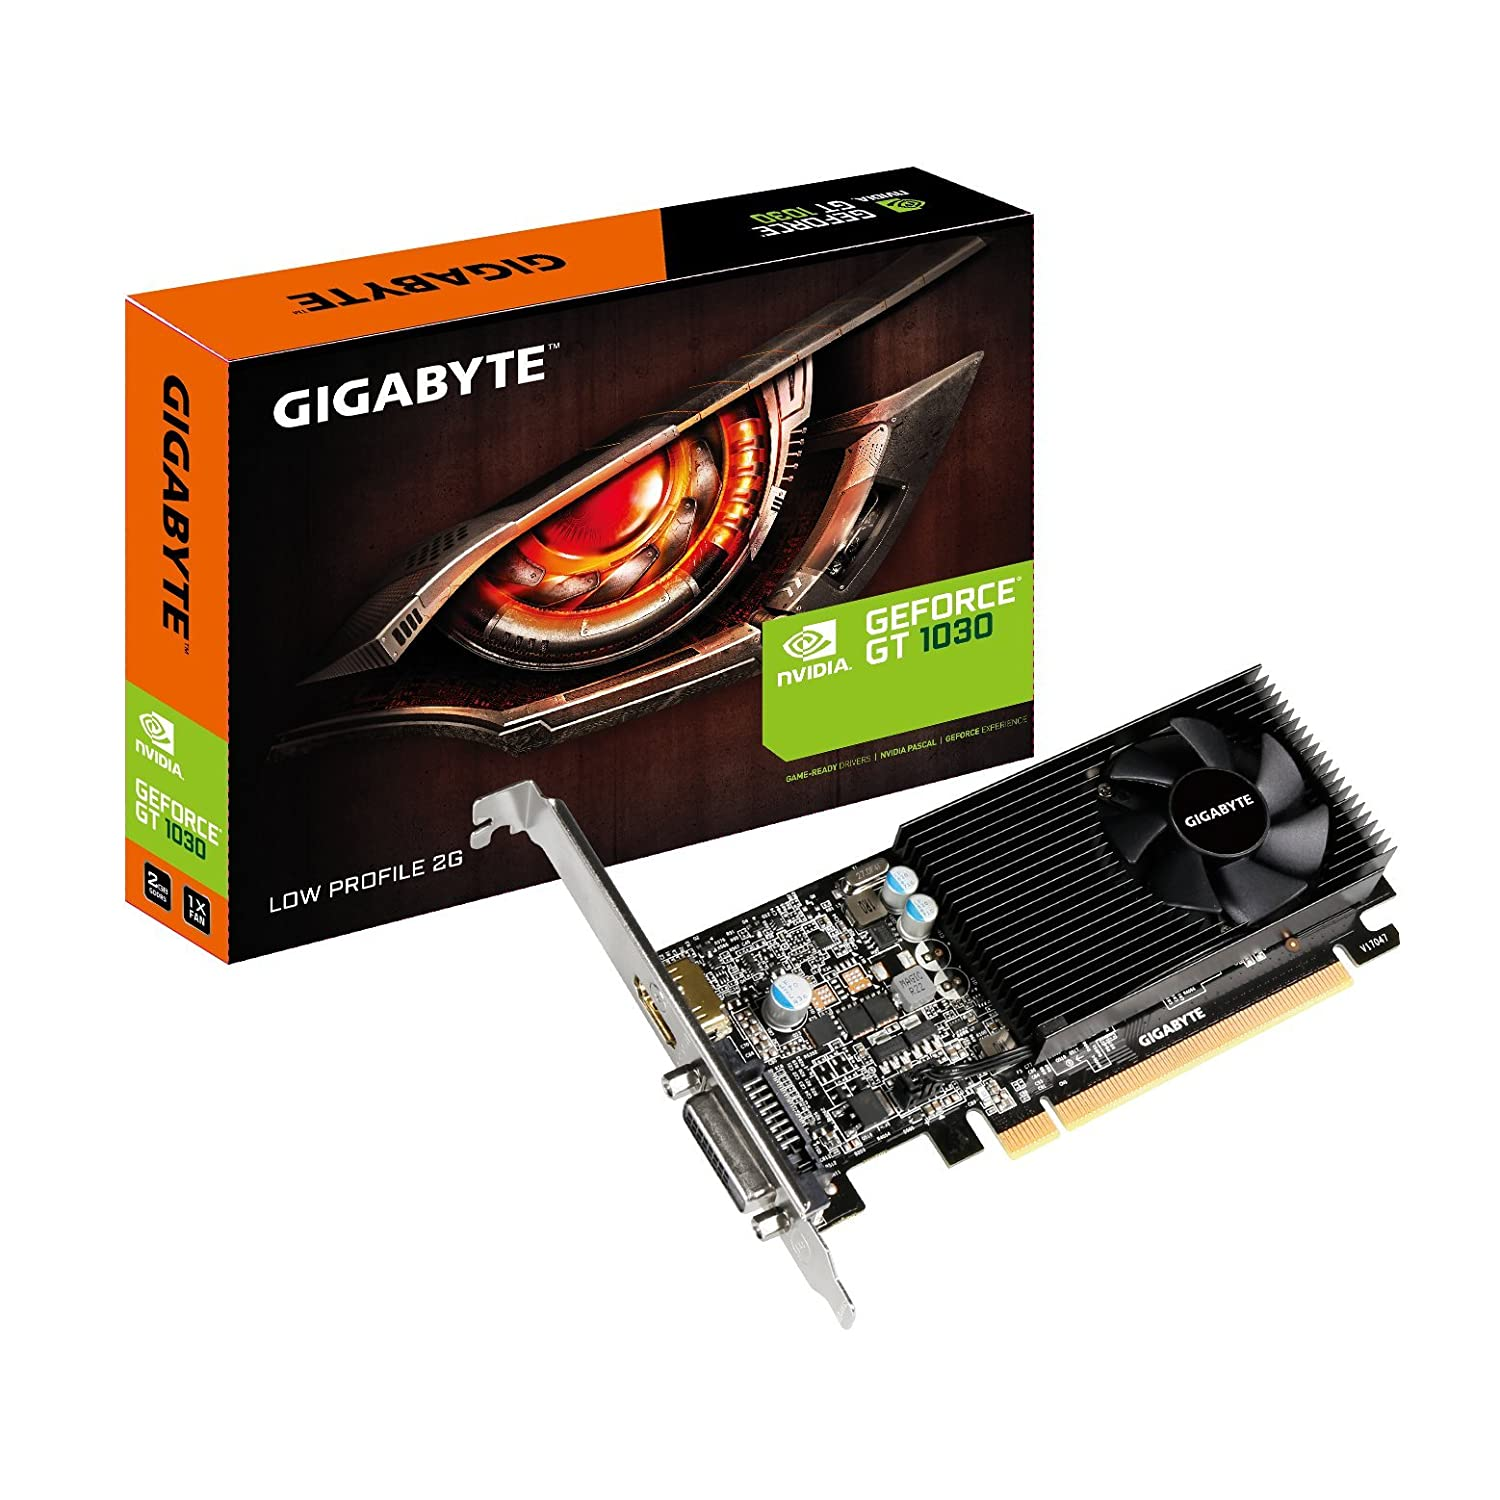 T. Video Gigabyte Nvidia GT1030 2GB GDDR5 LP GV-N1030D5-2GL